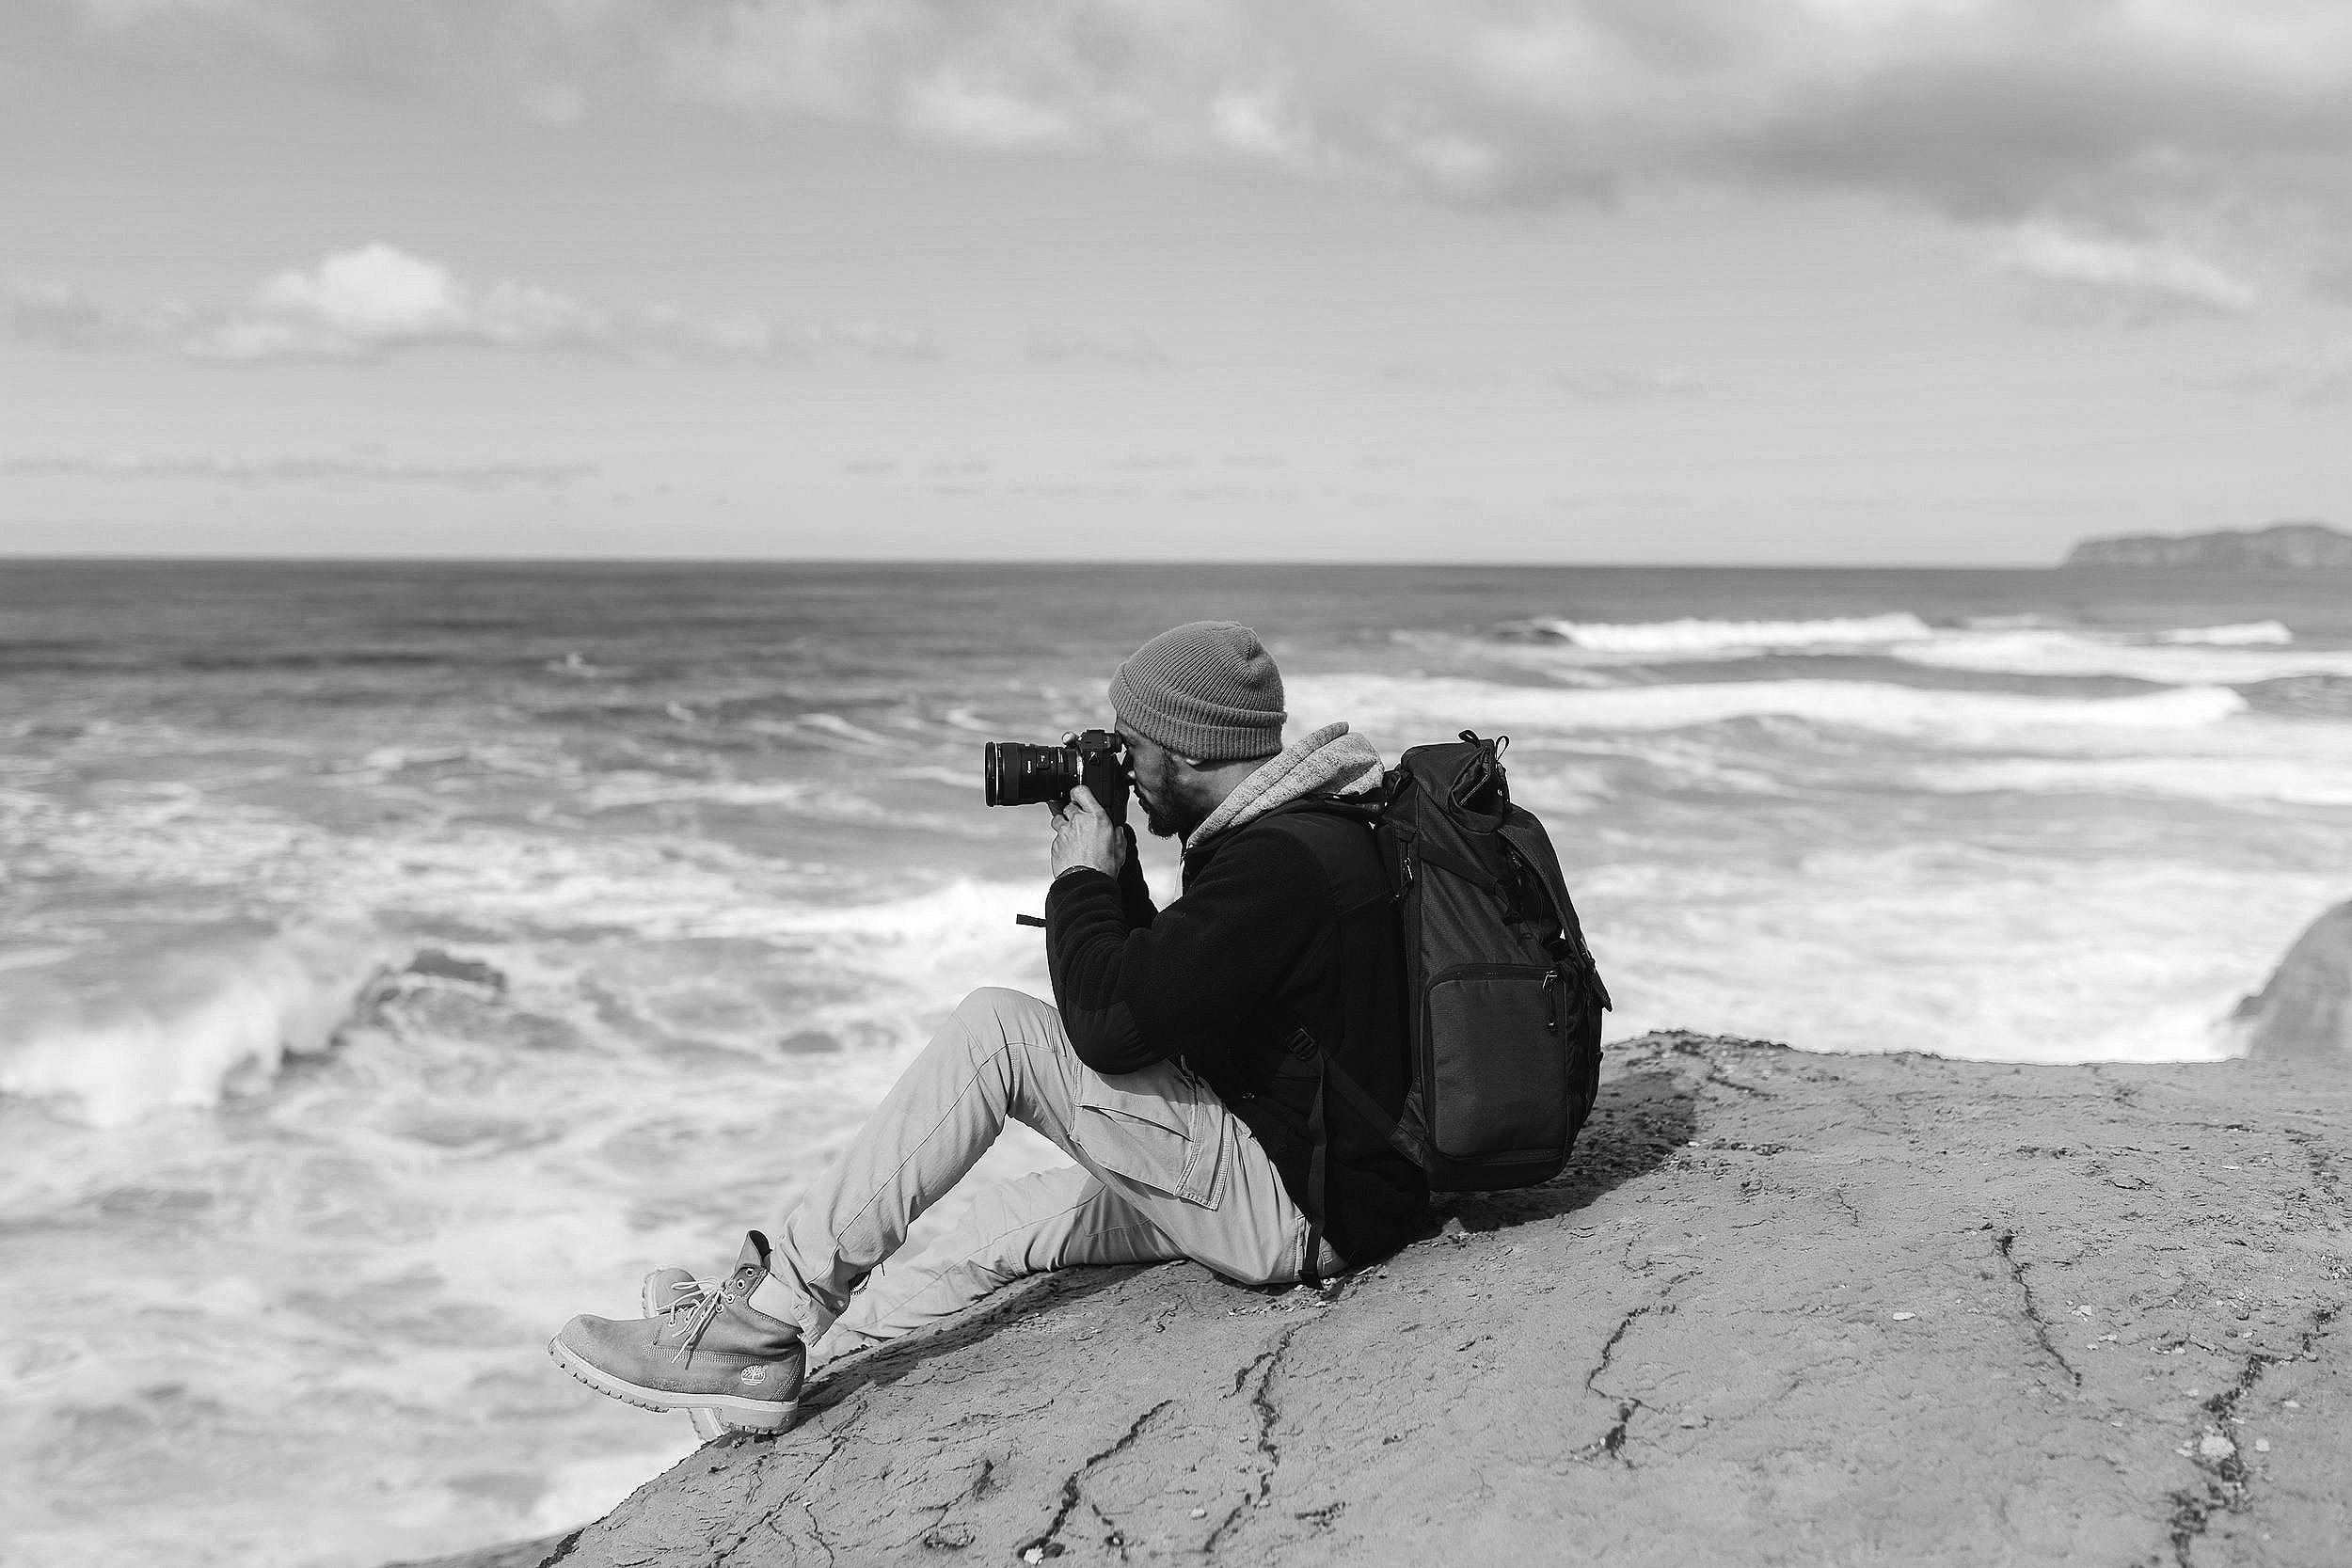 About me - Marice is an aspiring Fashion/Beauty Photographer based in Puylallup, WA